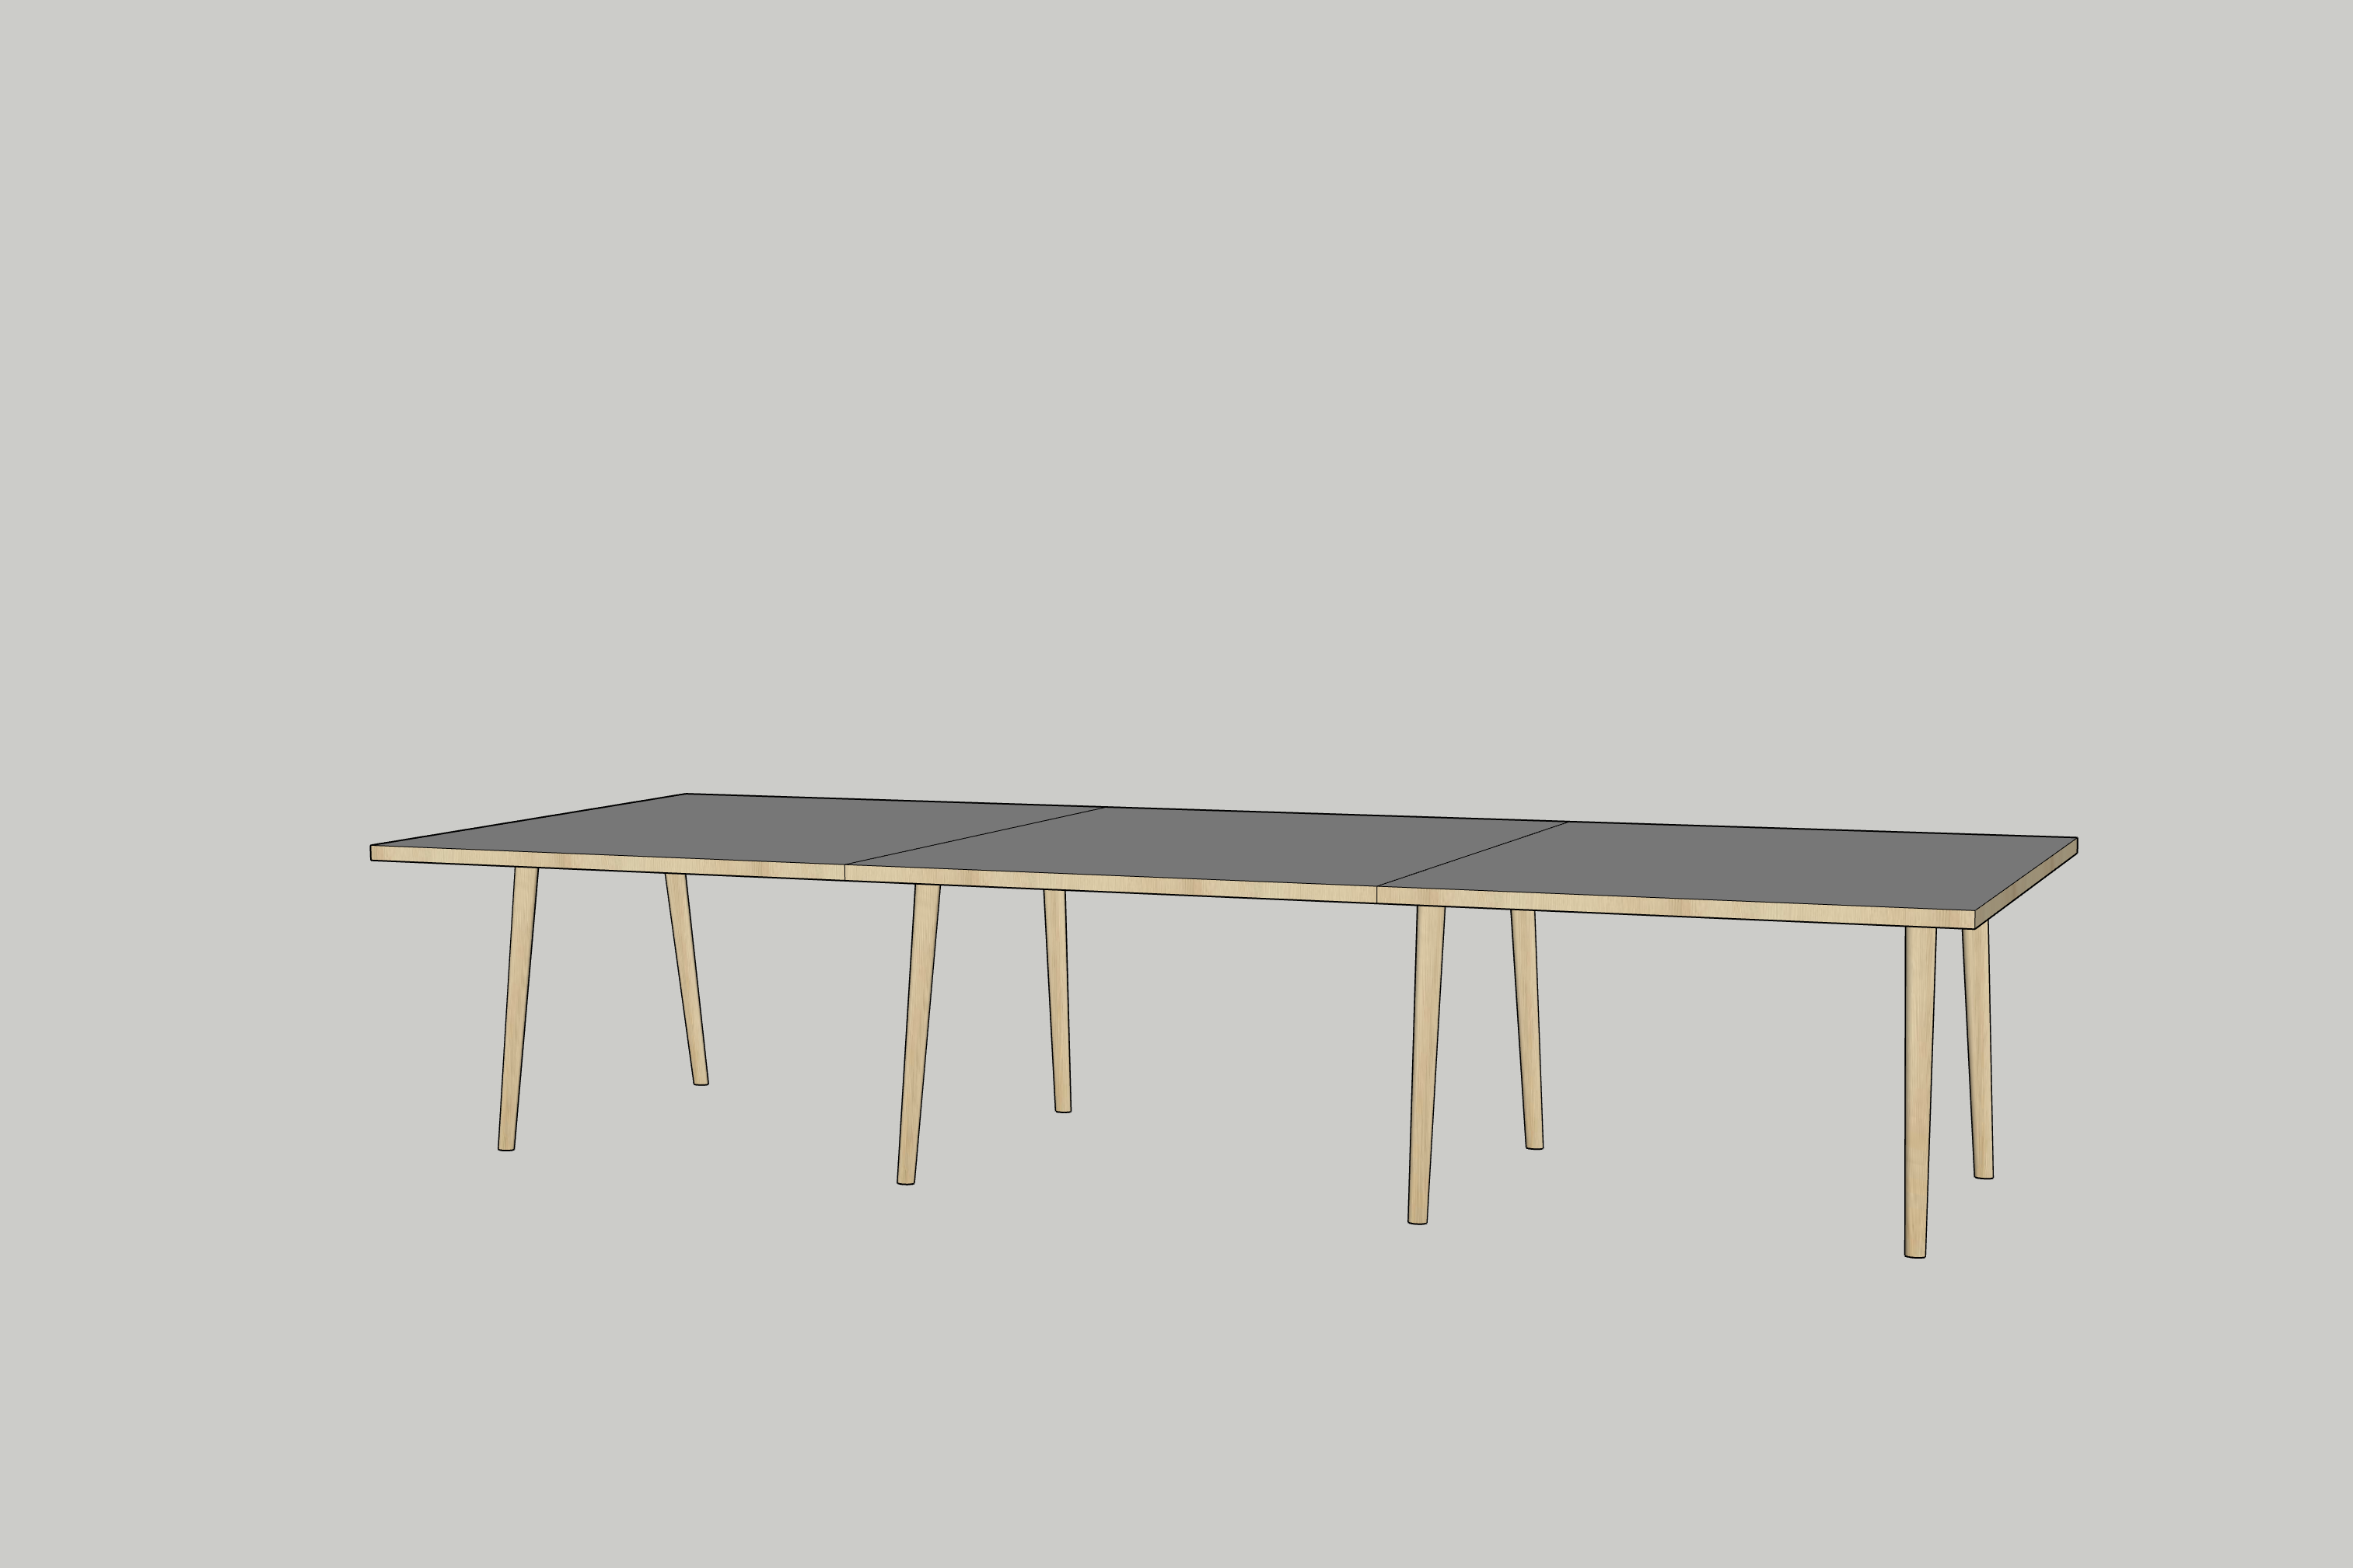 Forum Table modeled in SketchUp